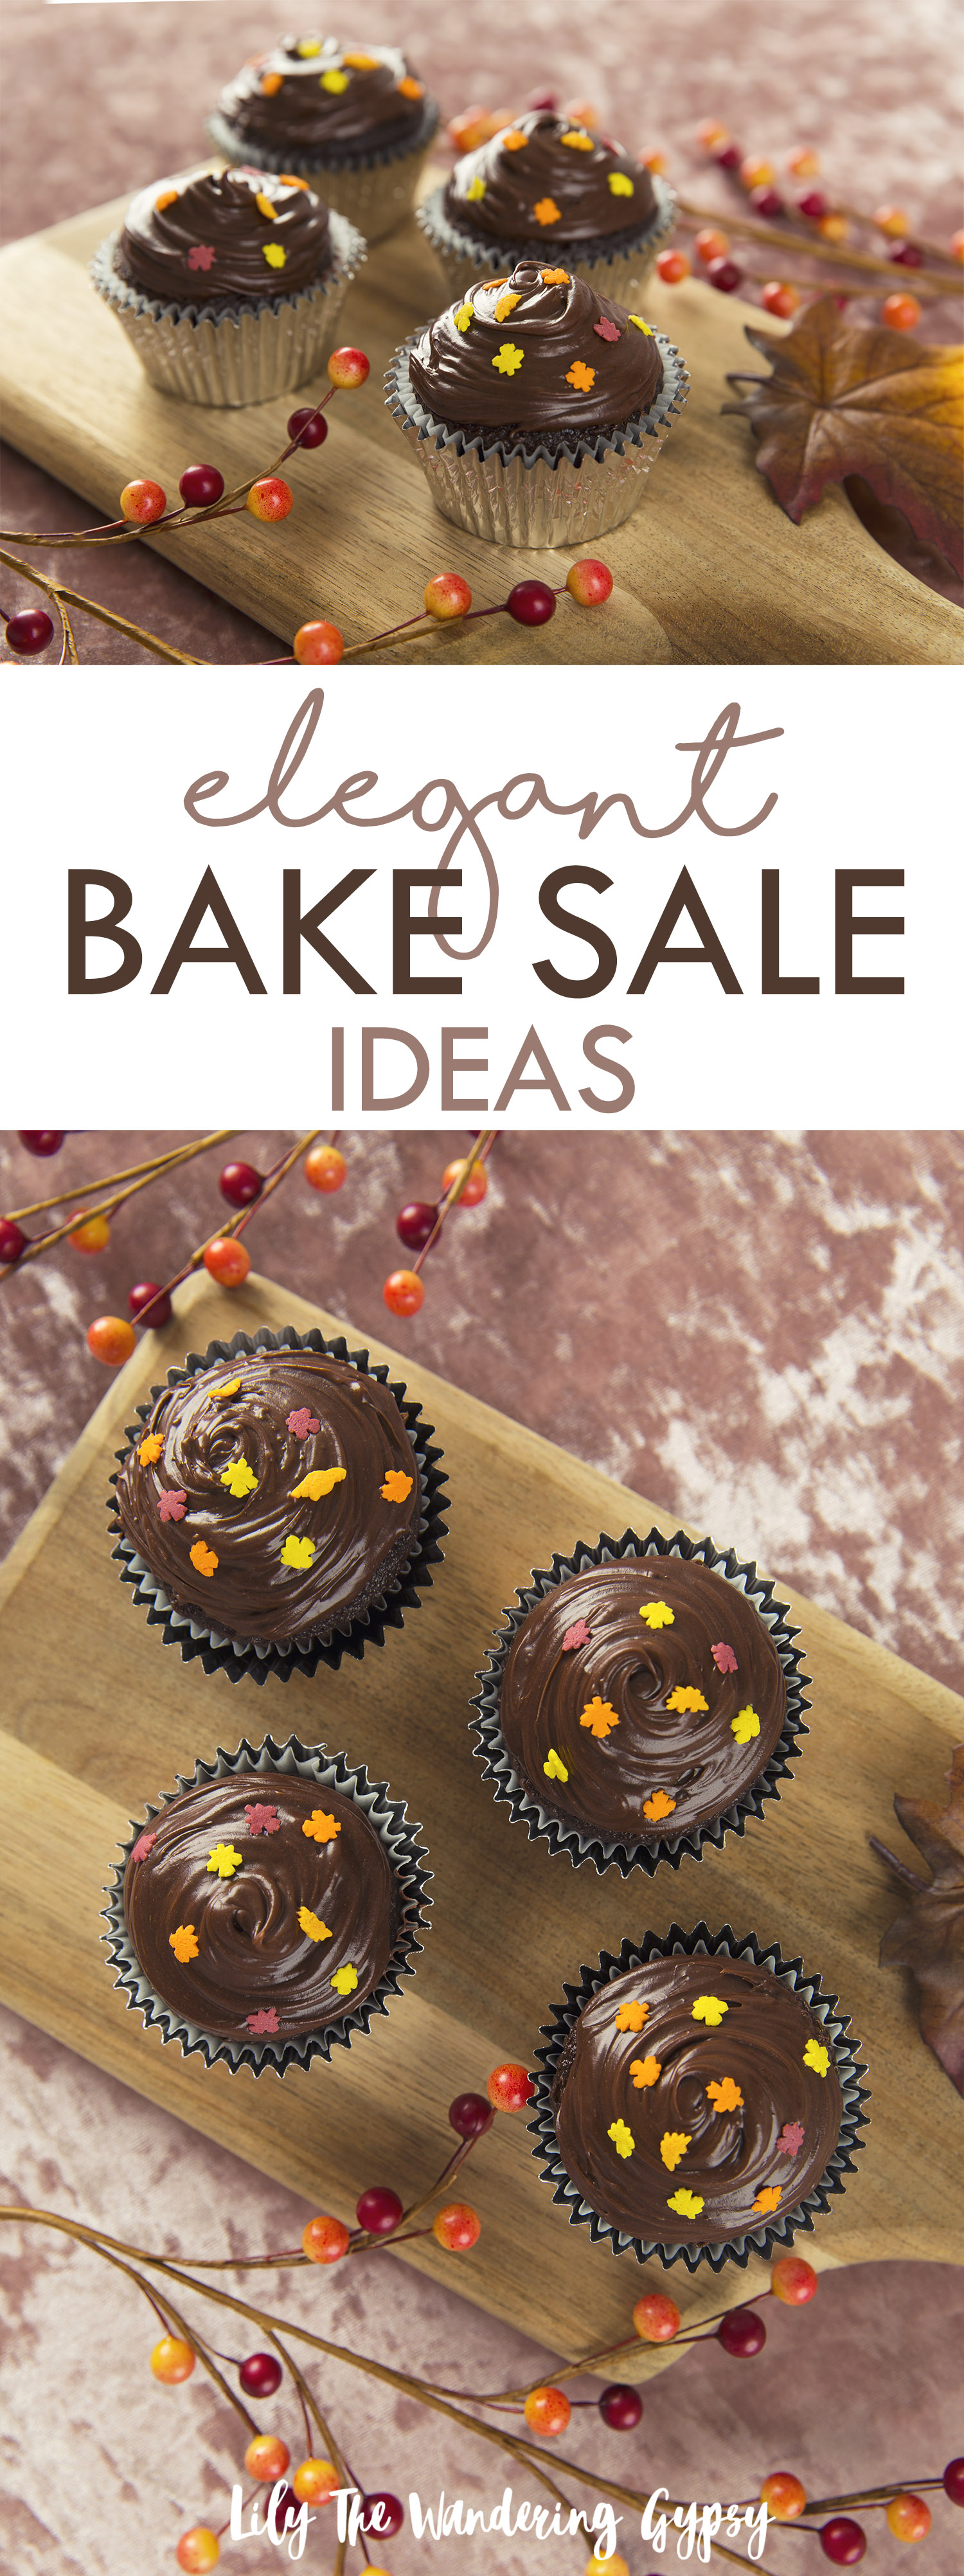 Fall Bake Sale Tips!